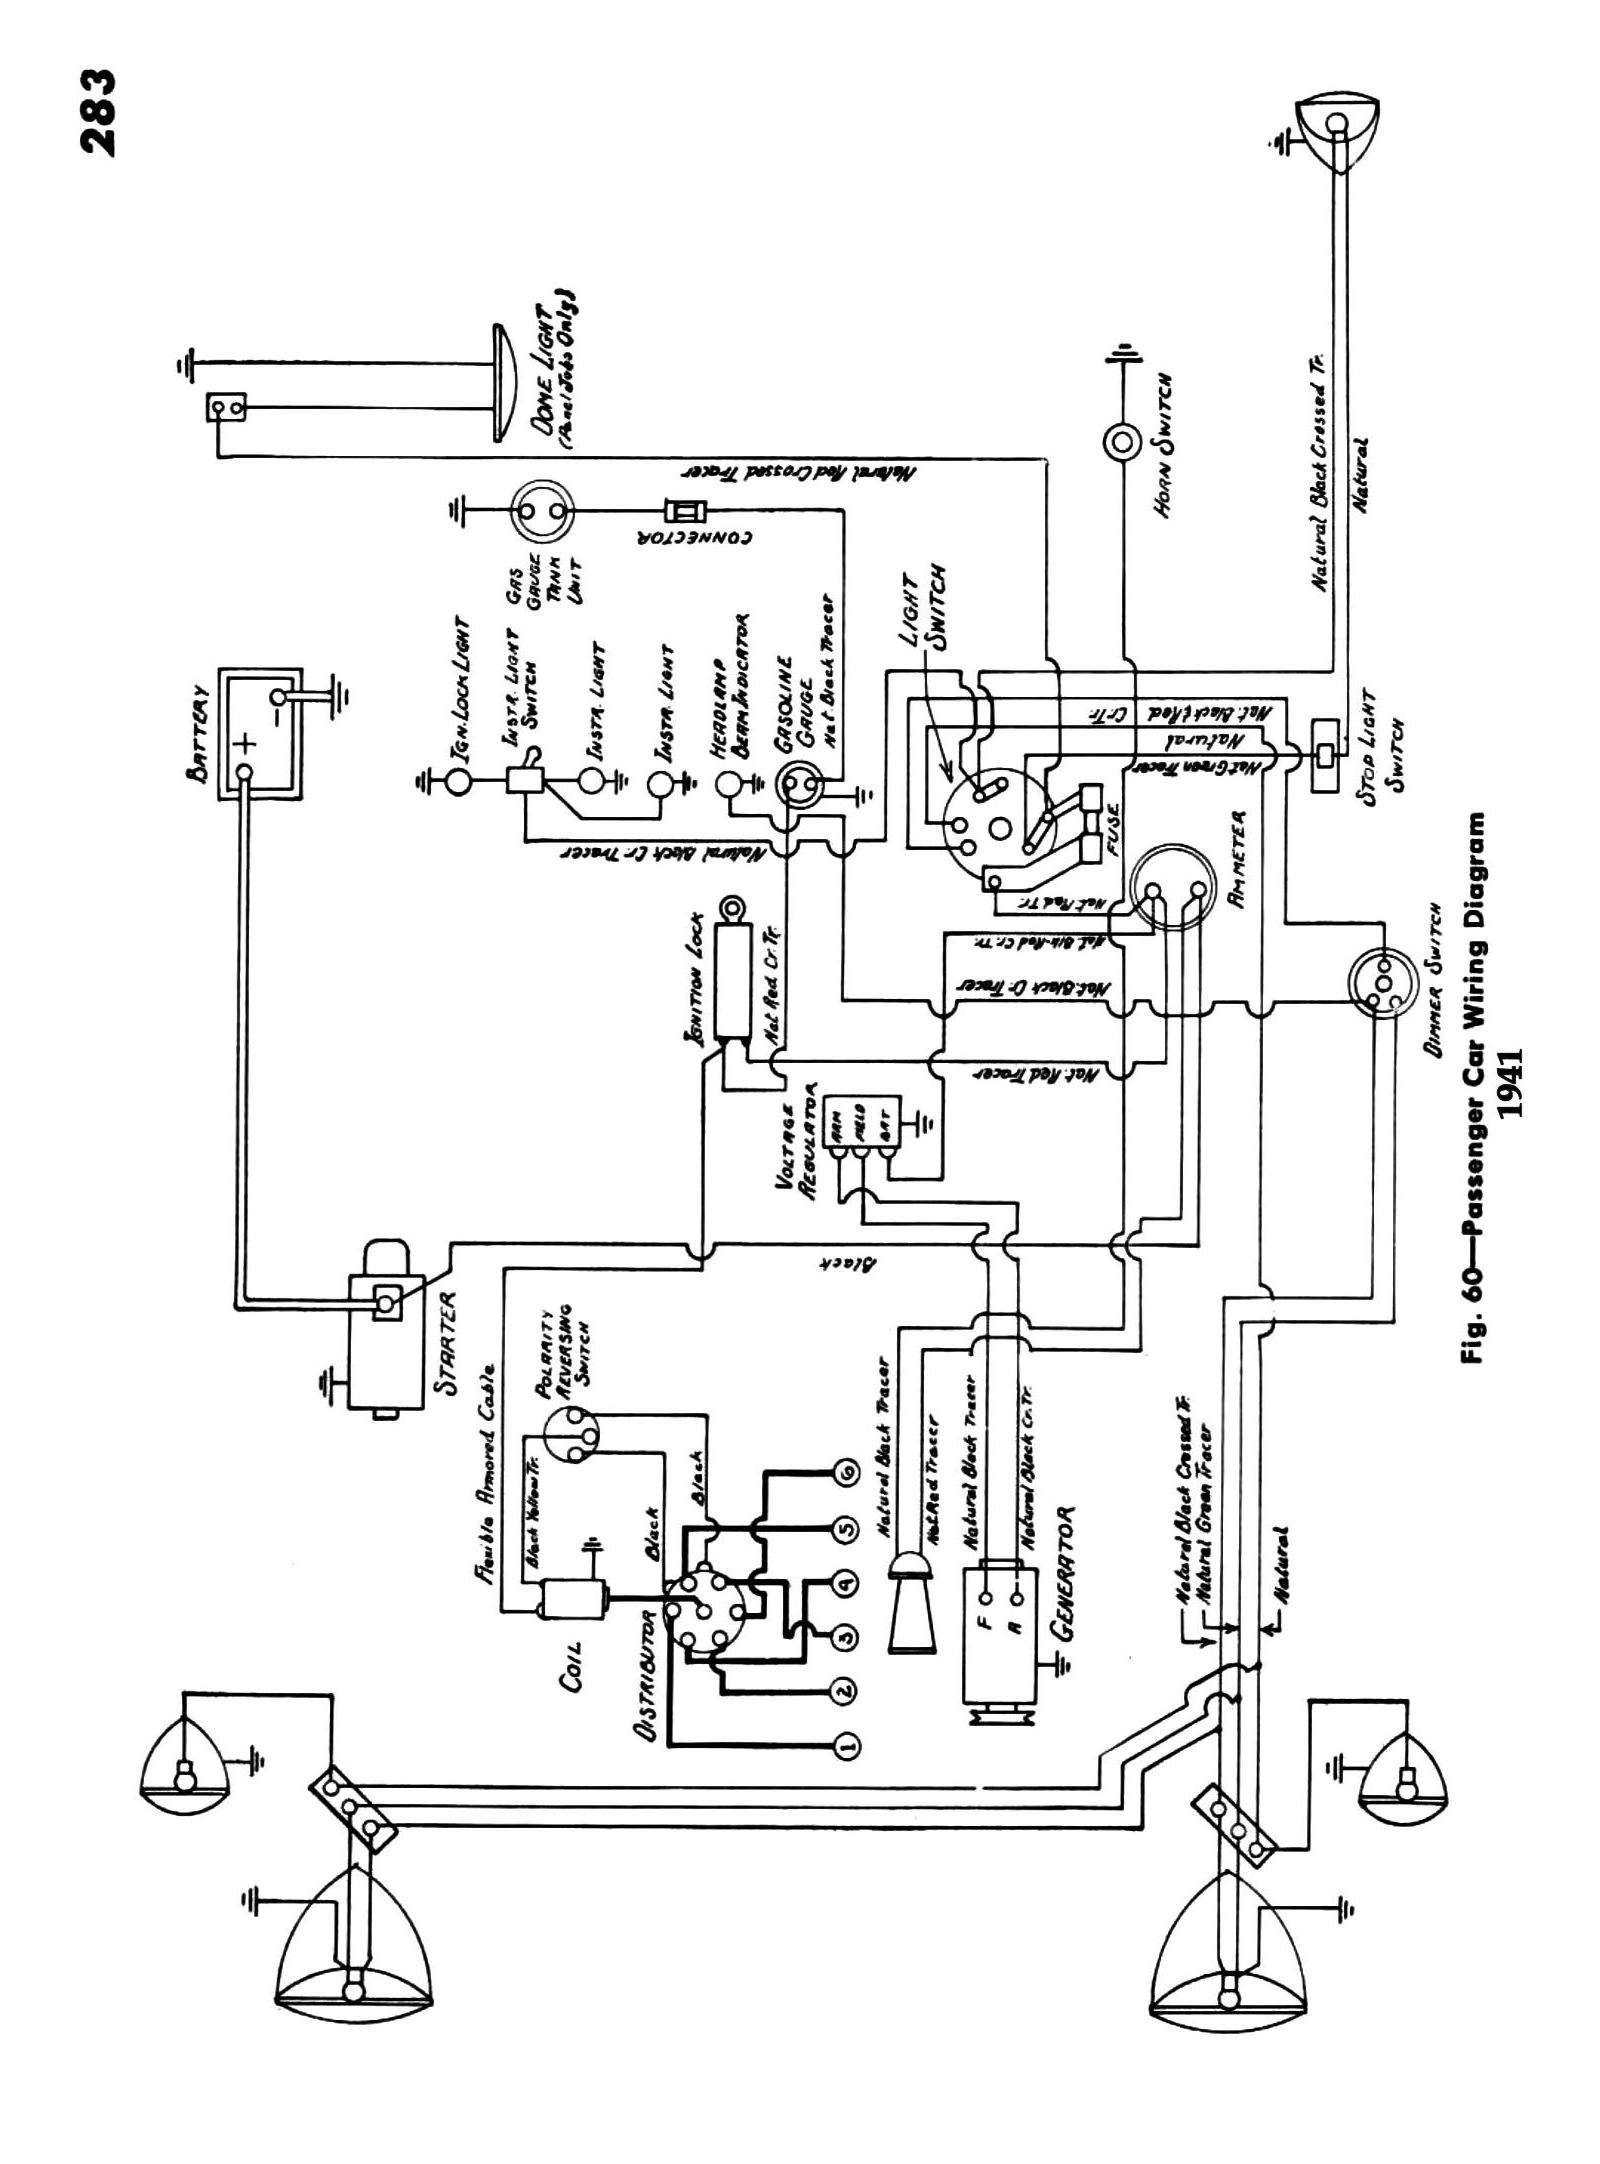 hight resolution of chevy wiring diagrams chevy 1500 tail light diagram 1995 gmc tail light wiring diagram